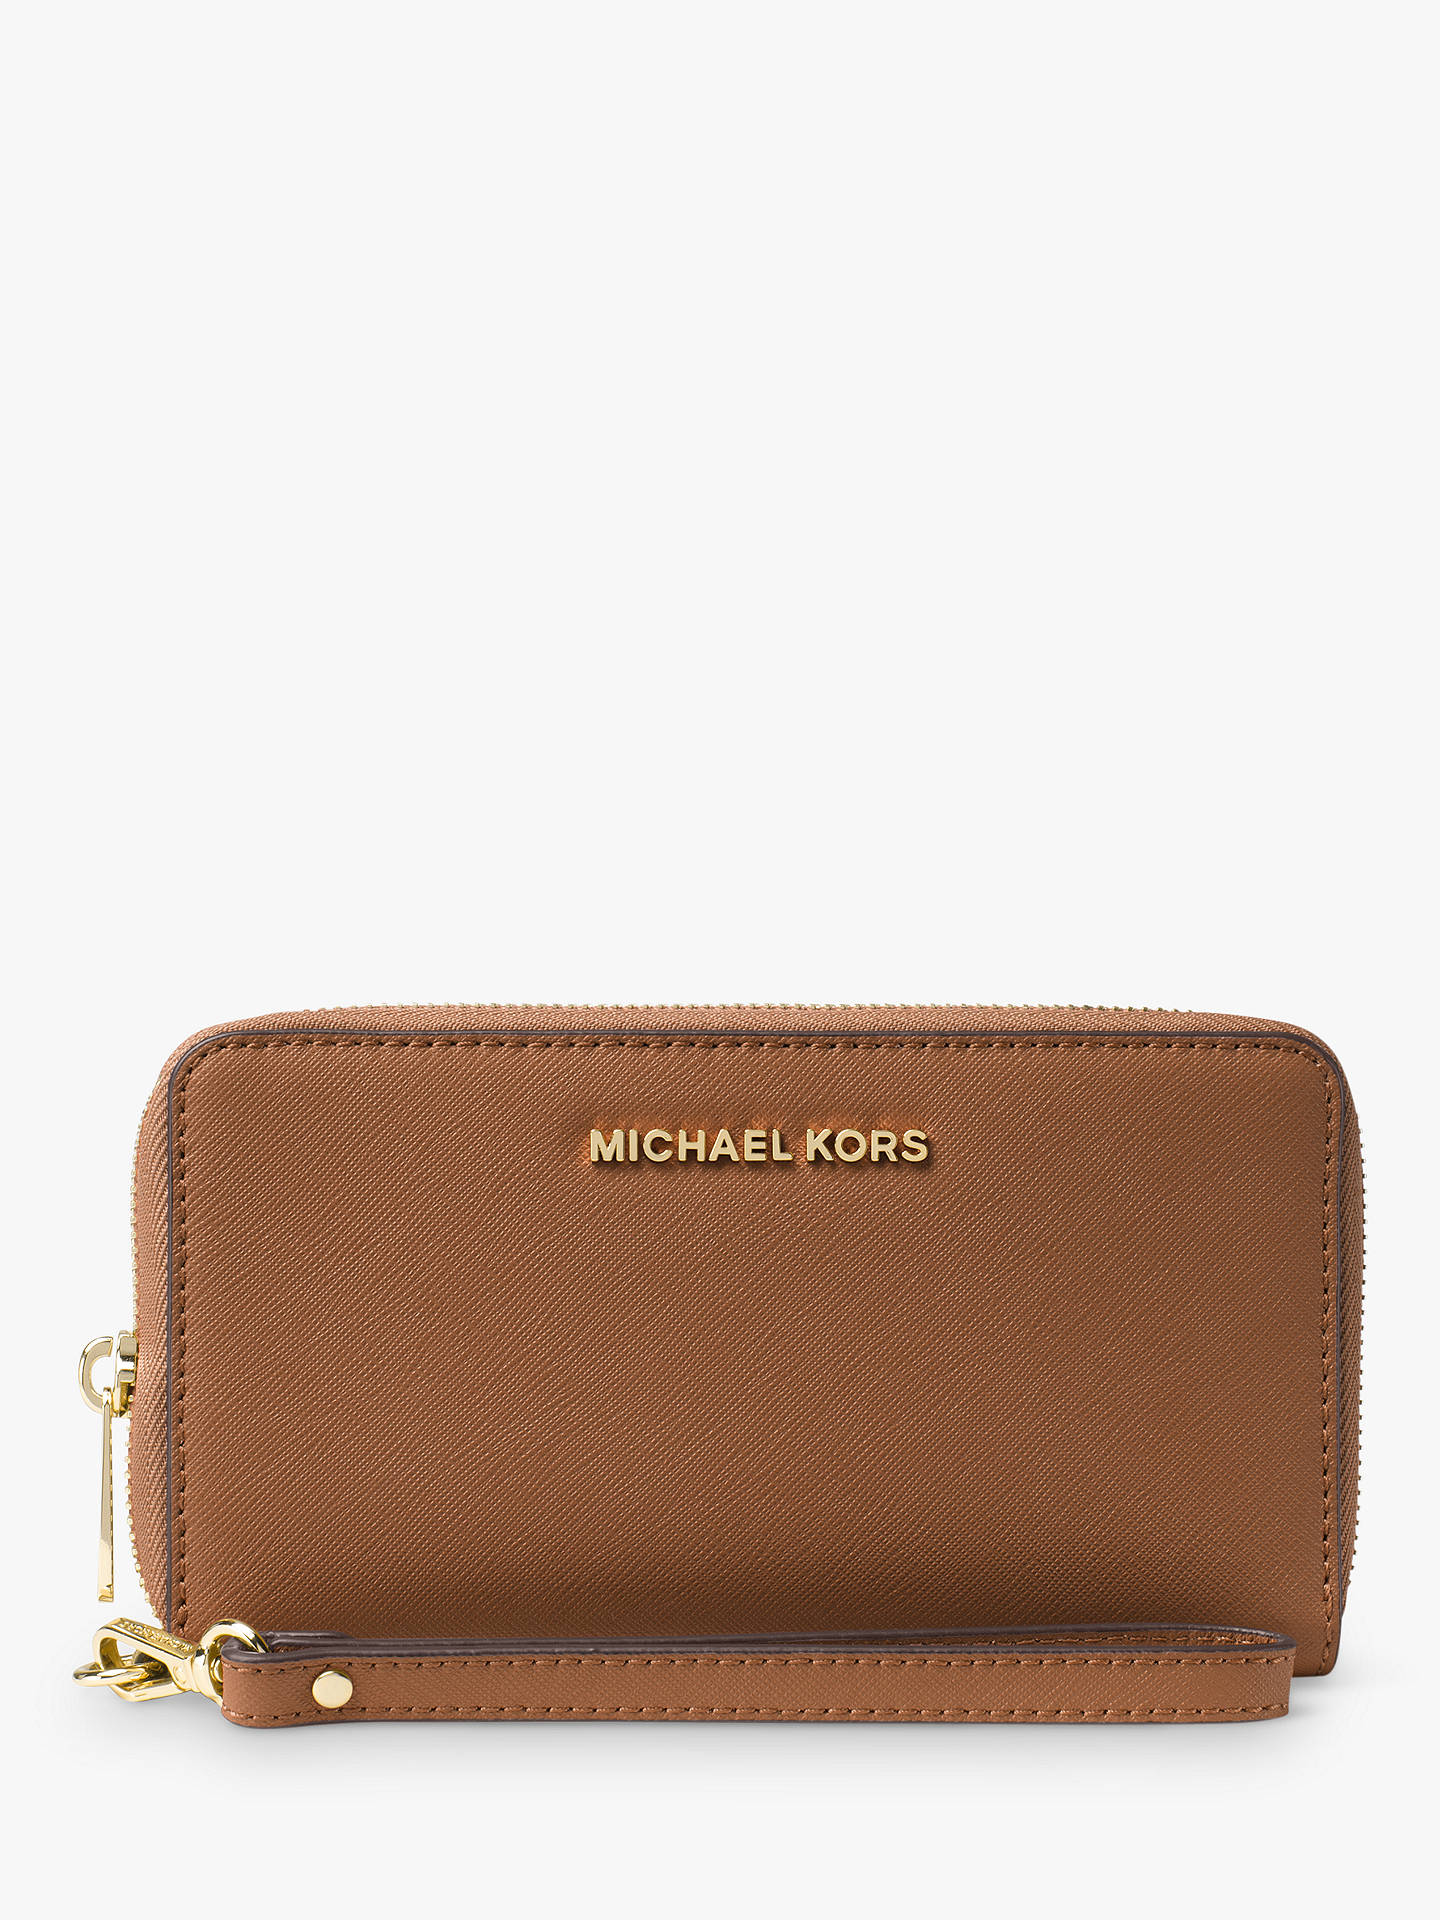 a741edf656a6 Buy MICHAEL Michael Kors Jet Set Large Leather Travel Phone Case Purse,  Luggage Online at ...